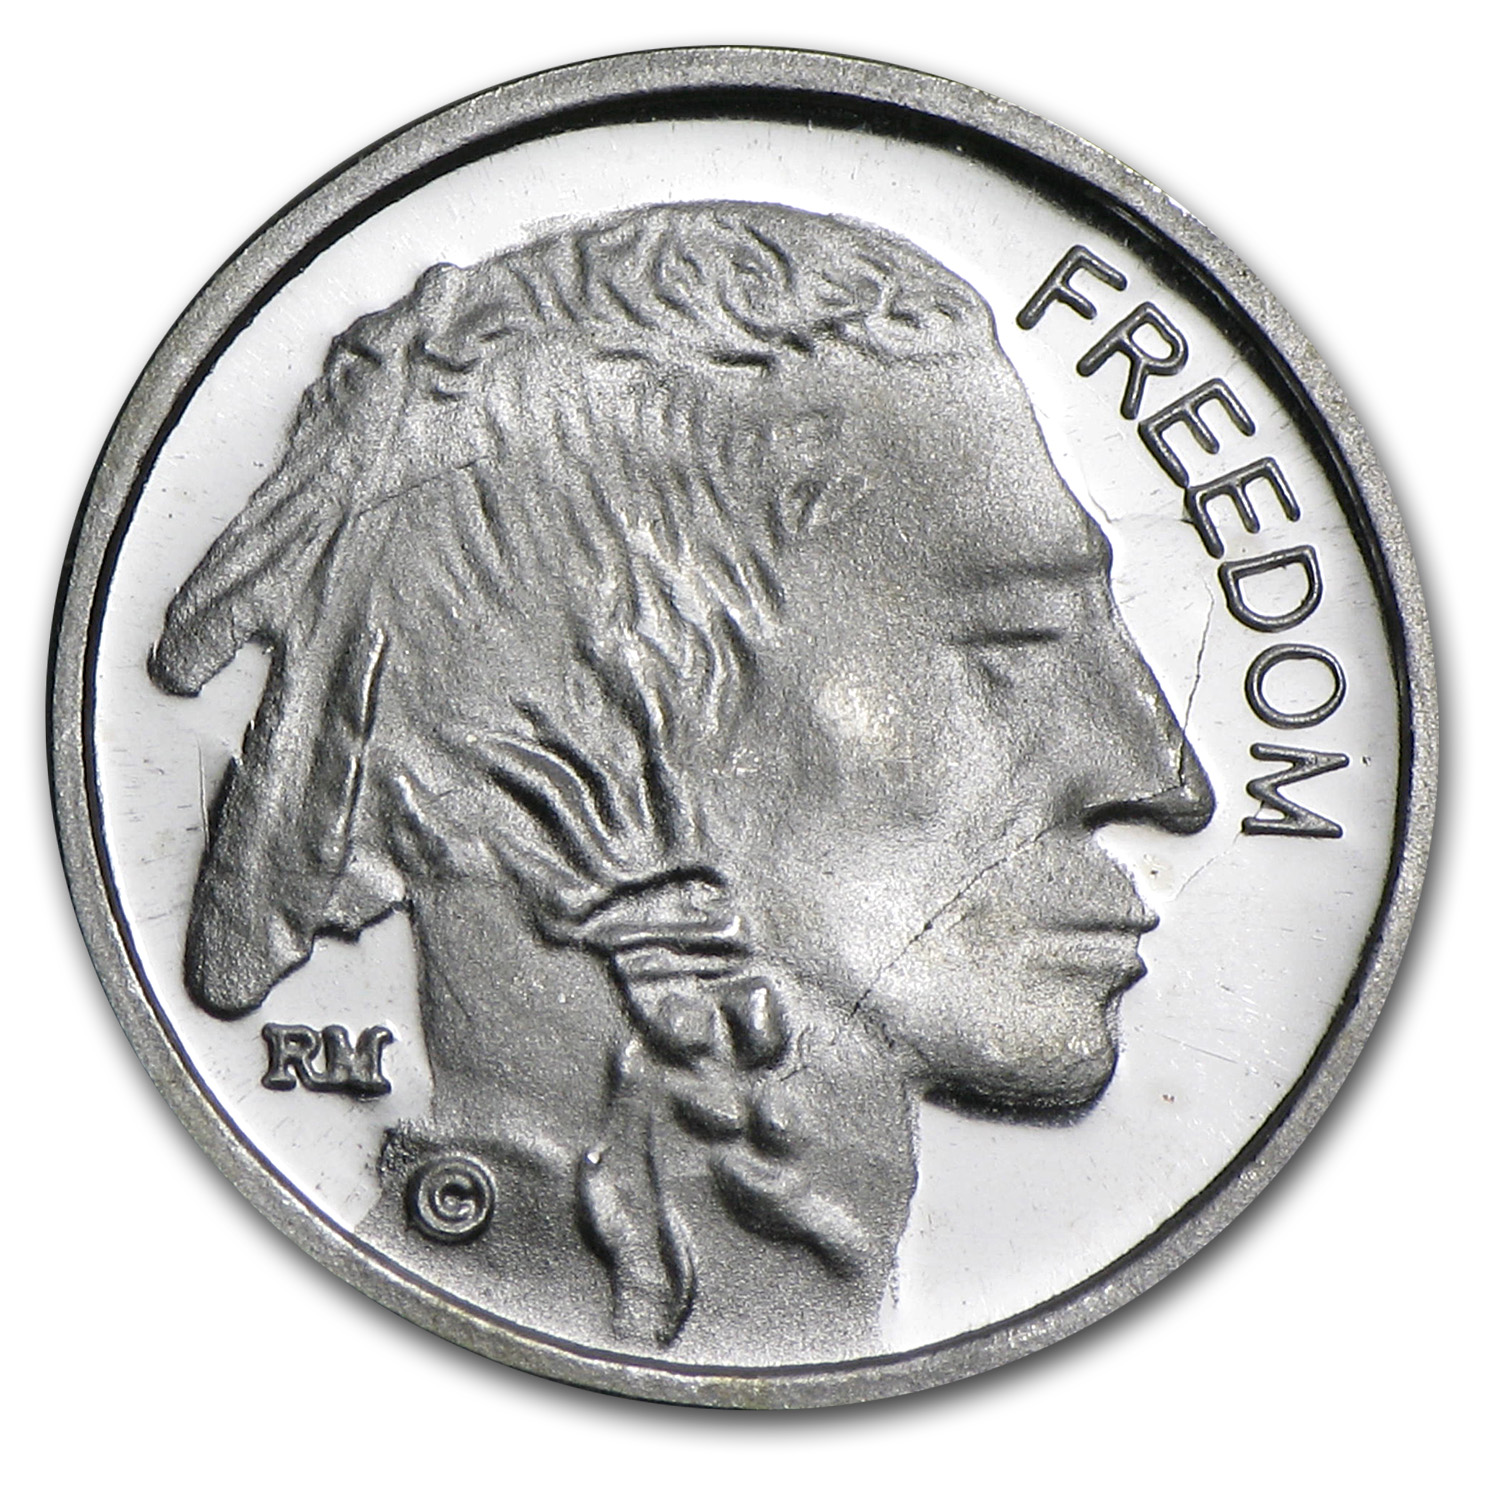 1 gram Silver Round - Freedom Indian Head/Buffalo Nickel